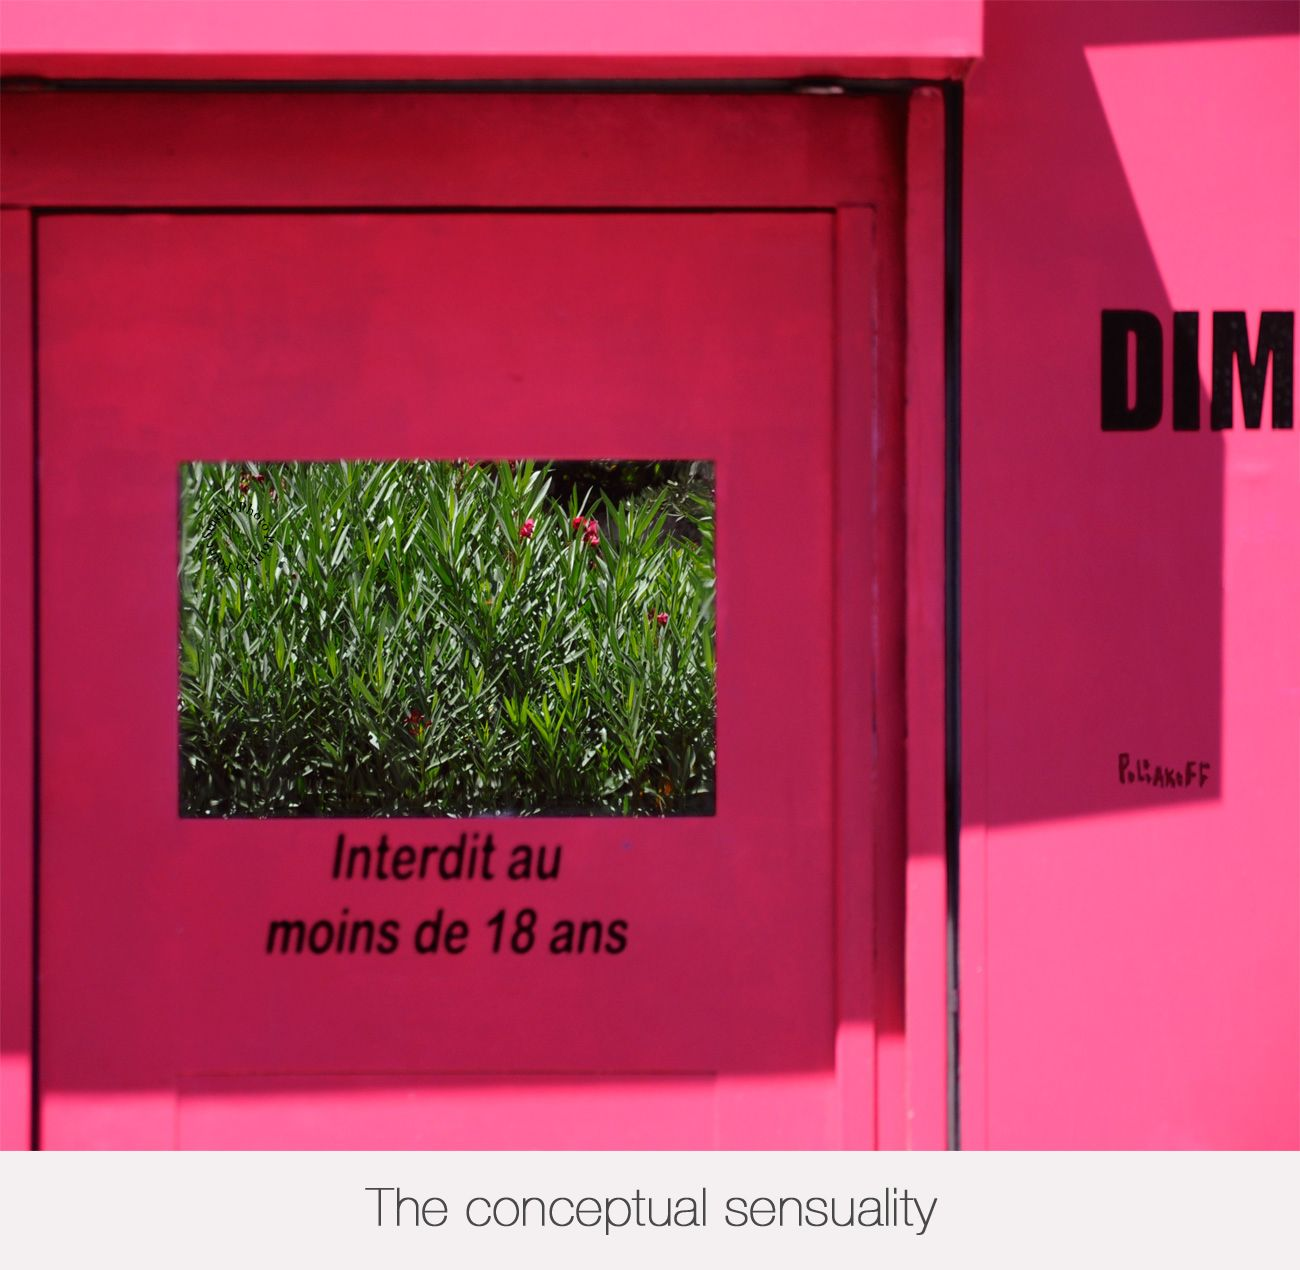 CONCEPTUAL SENSUALITY link http://pointopoint.blogg.org/poliakoff-conceptual-sensuality-a116321936